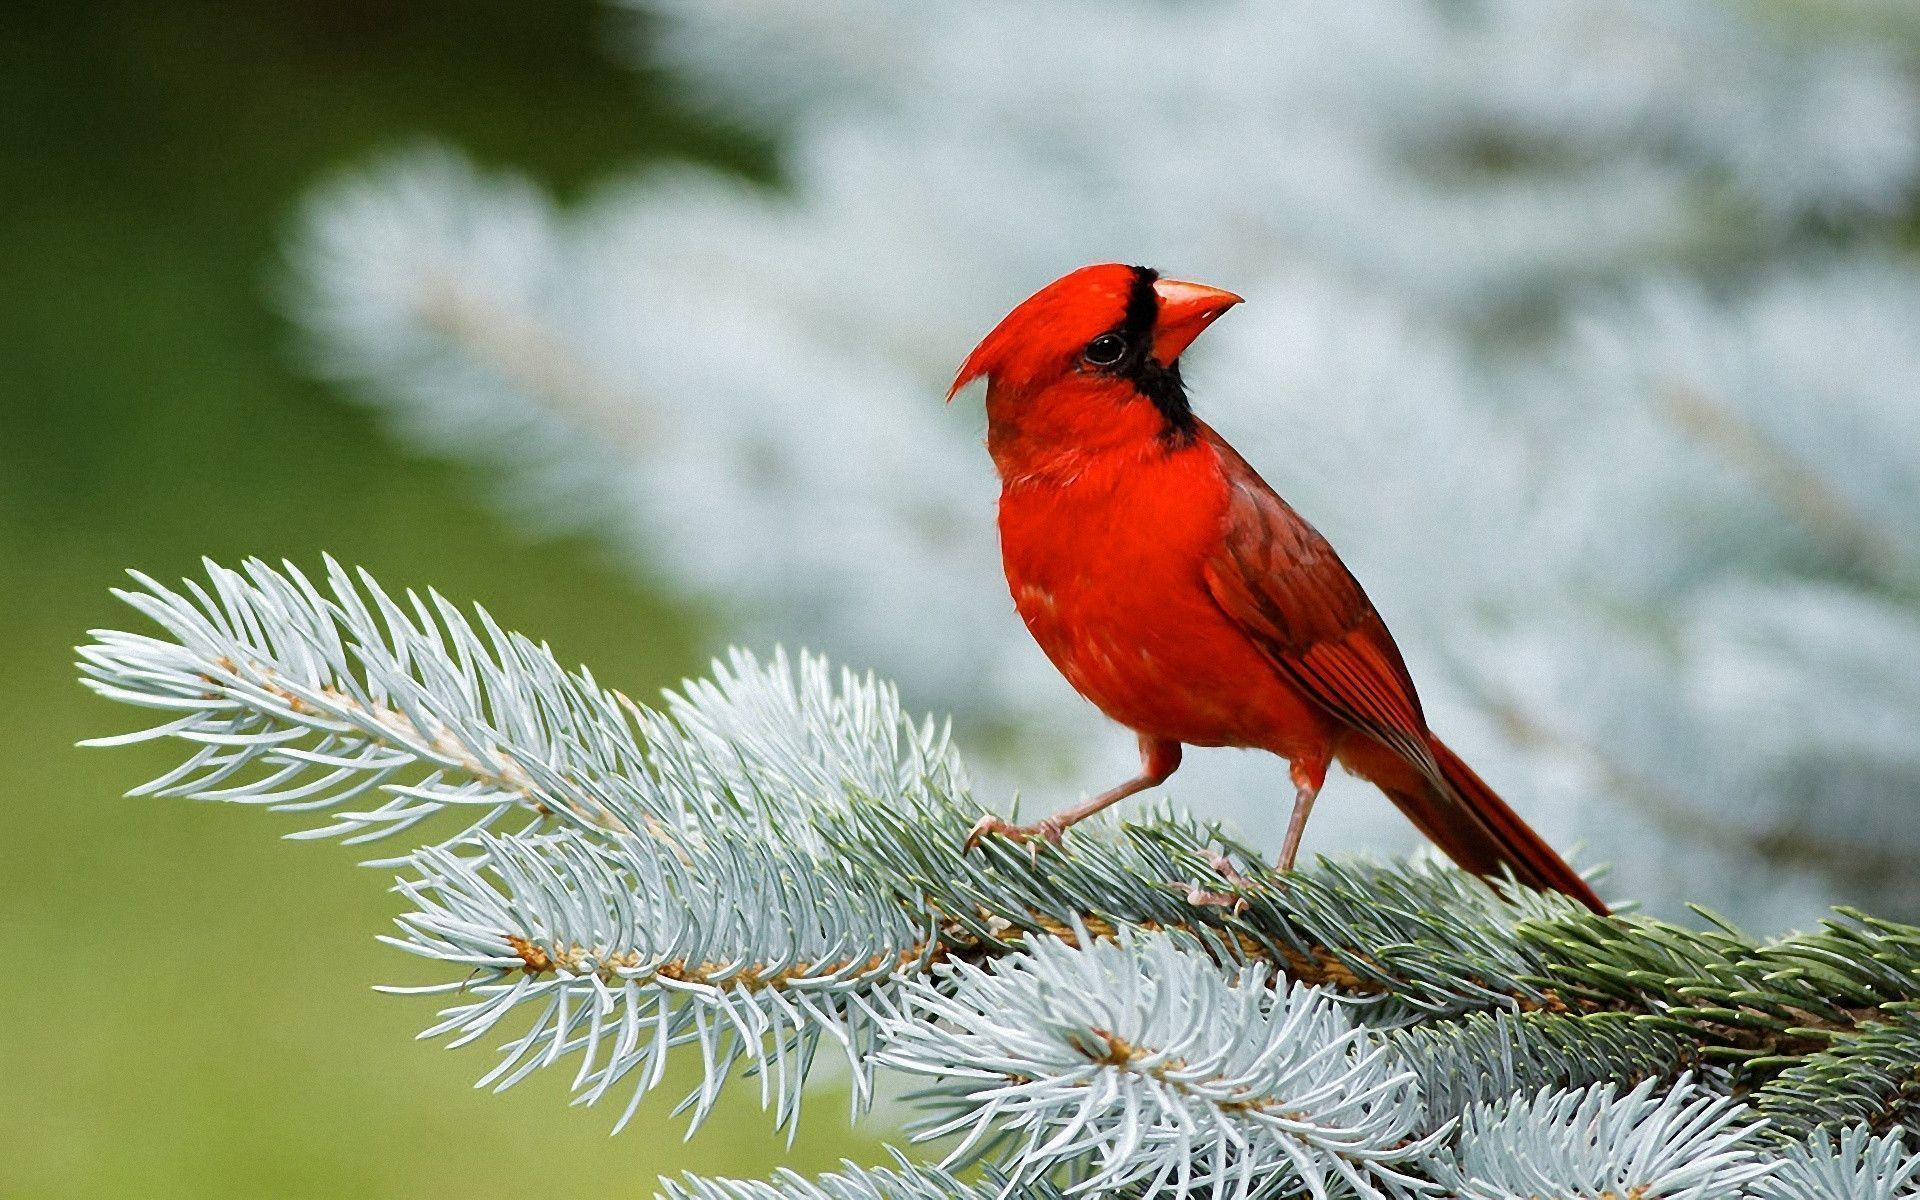 Bird Wallpapers Top Free Bird Backgrounds Wallpaperaccess Best high quality 4k ultra hd wallpapers collection for your phone. bird wallpapers top free bird